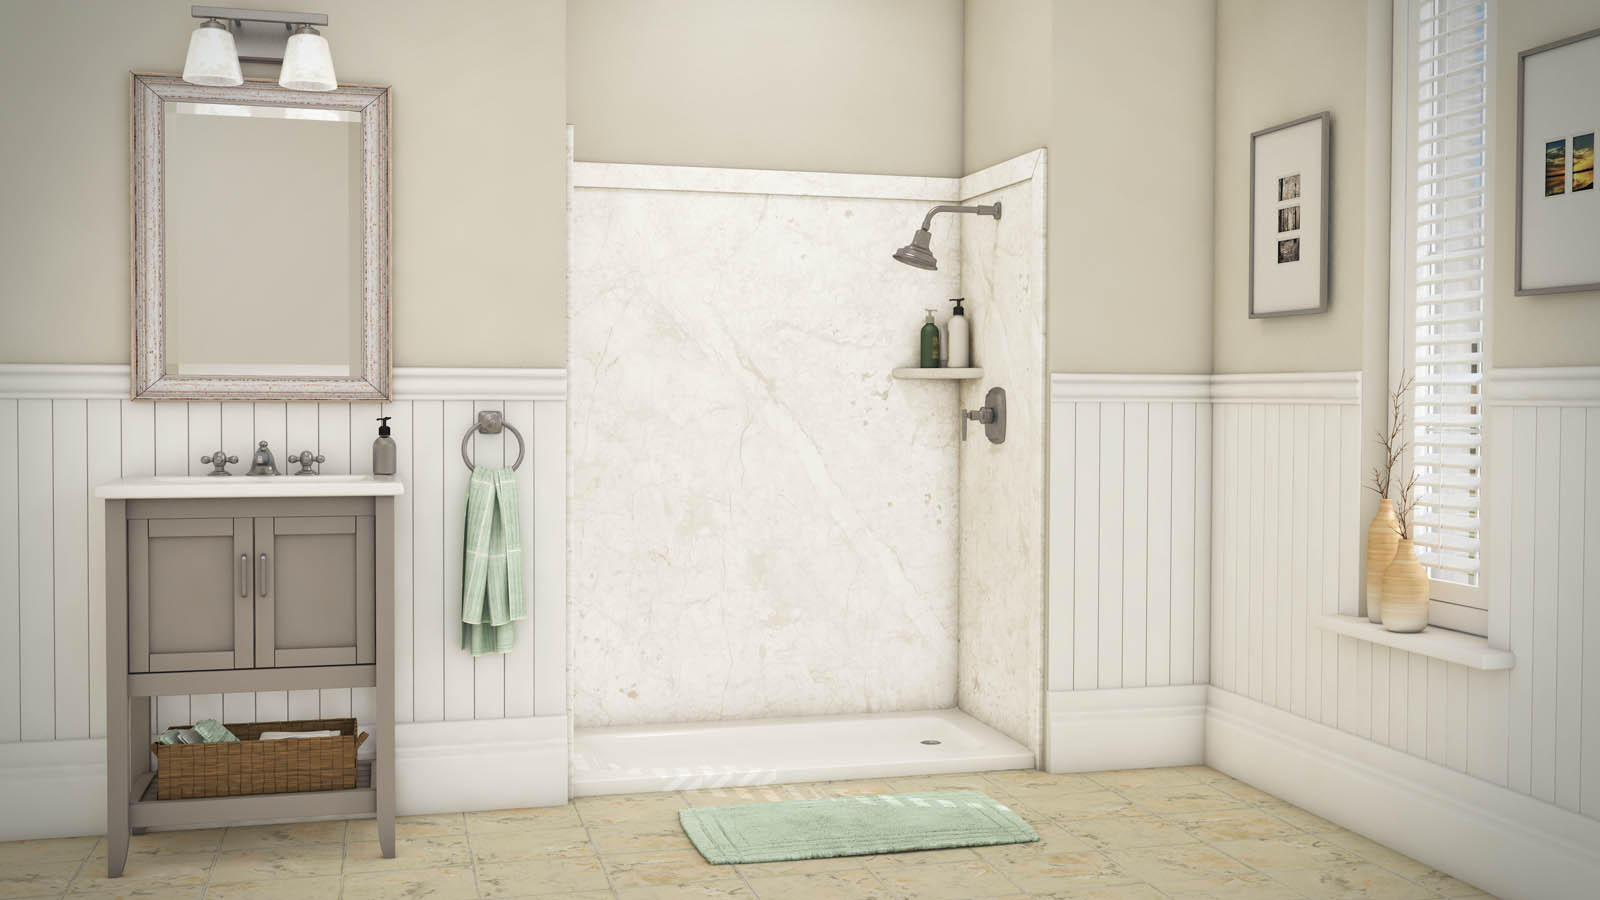 Bathroom remodel try these budget friendly options - Budget friendly bathroom remodel ...